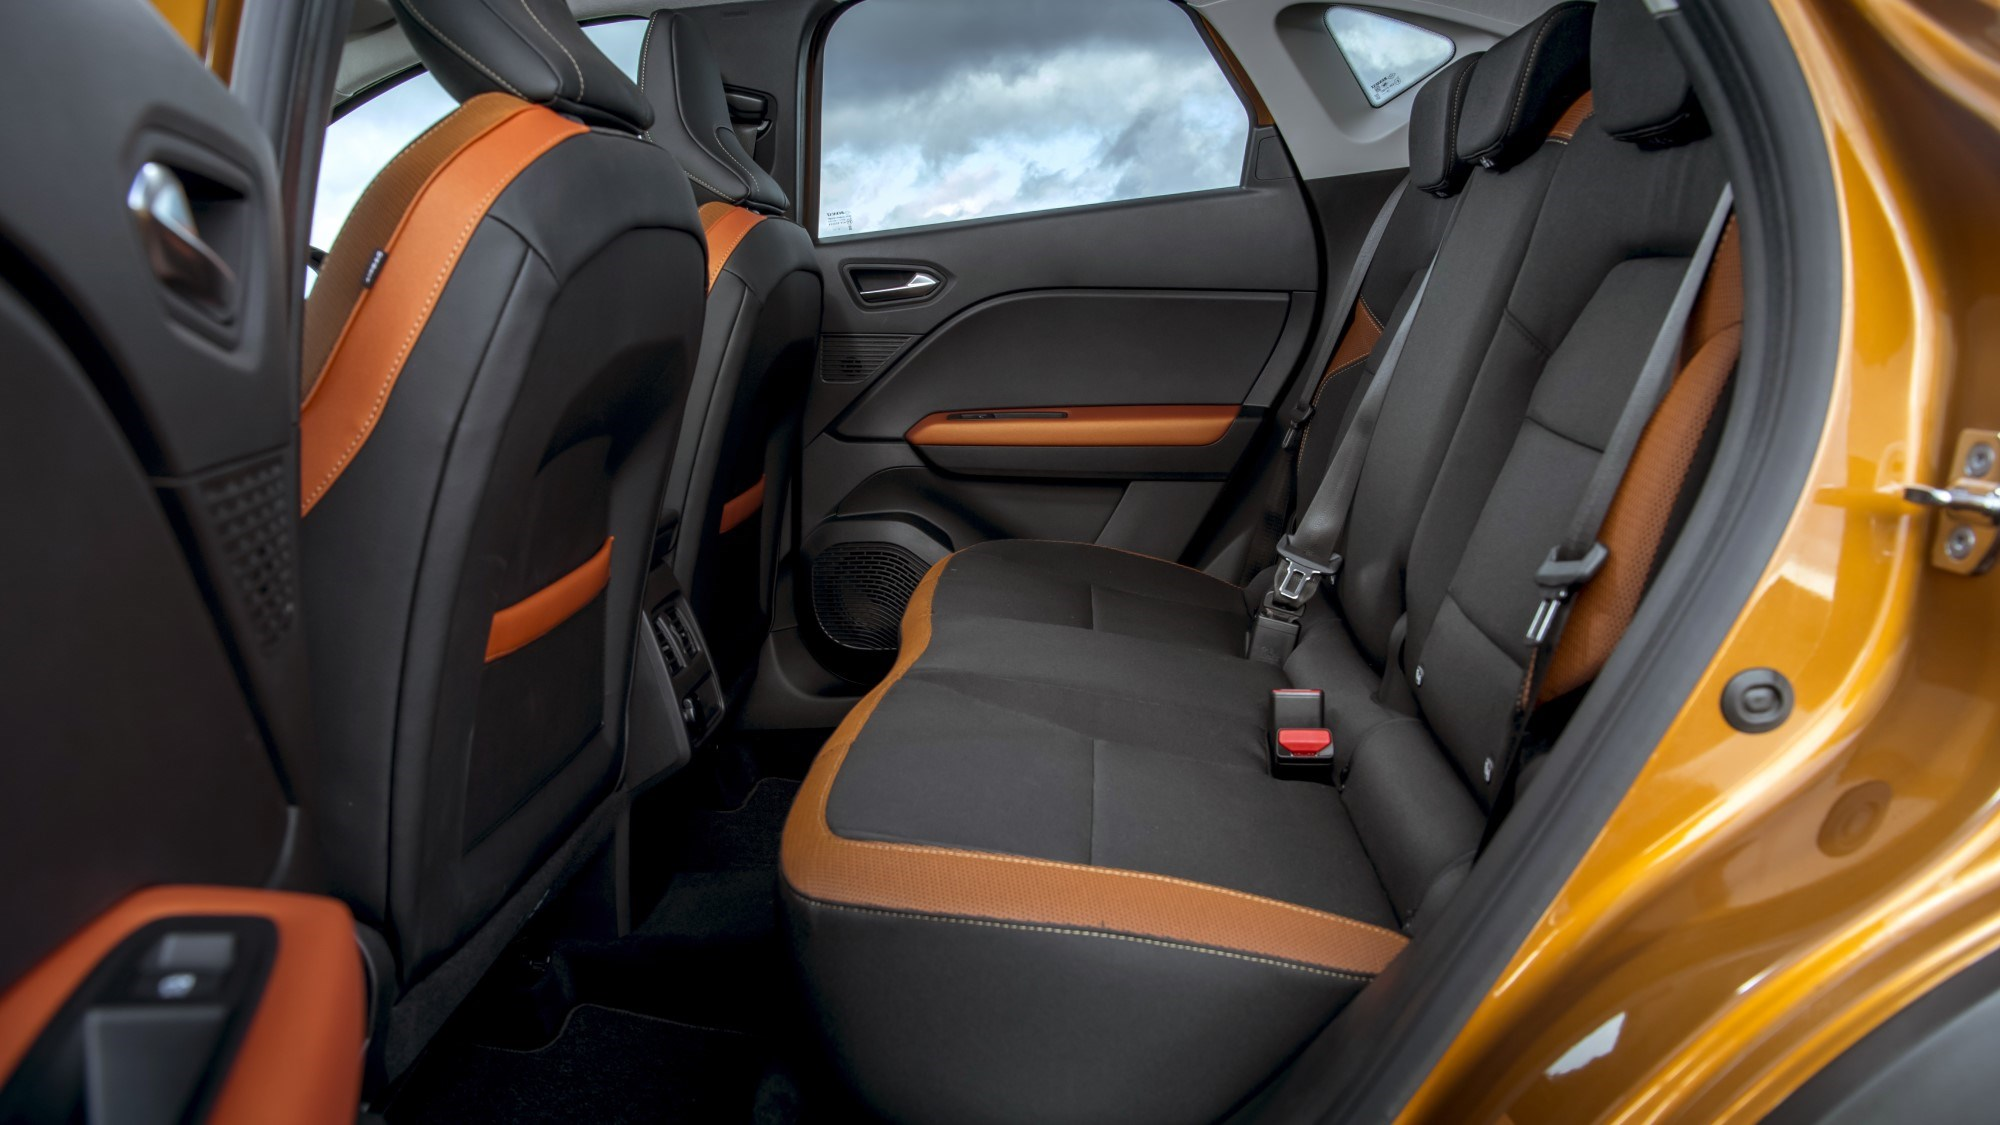 2020 Renault Captur rear seats